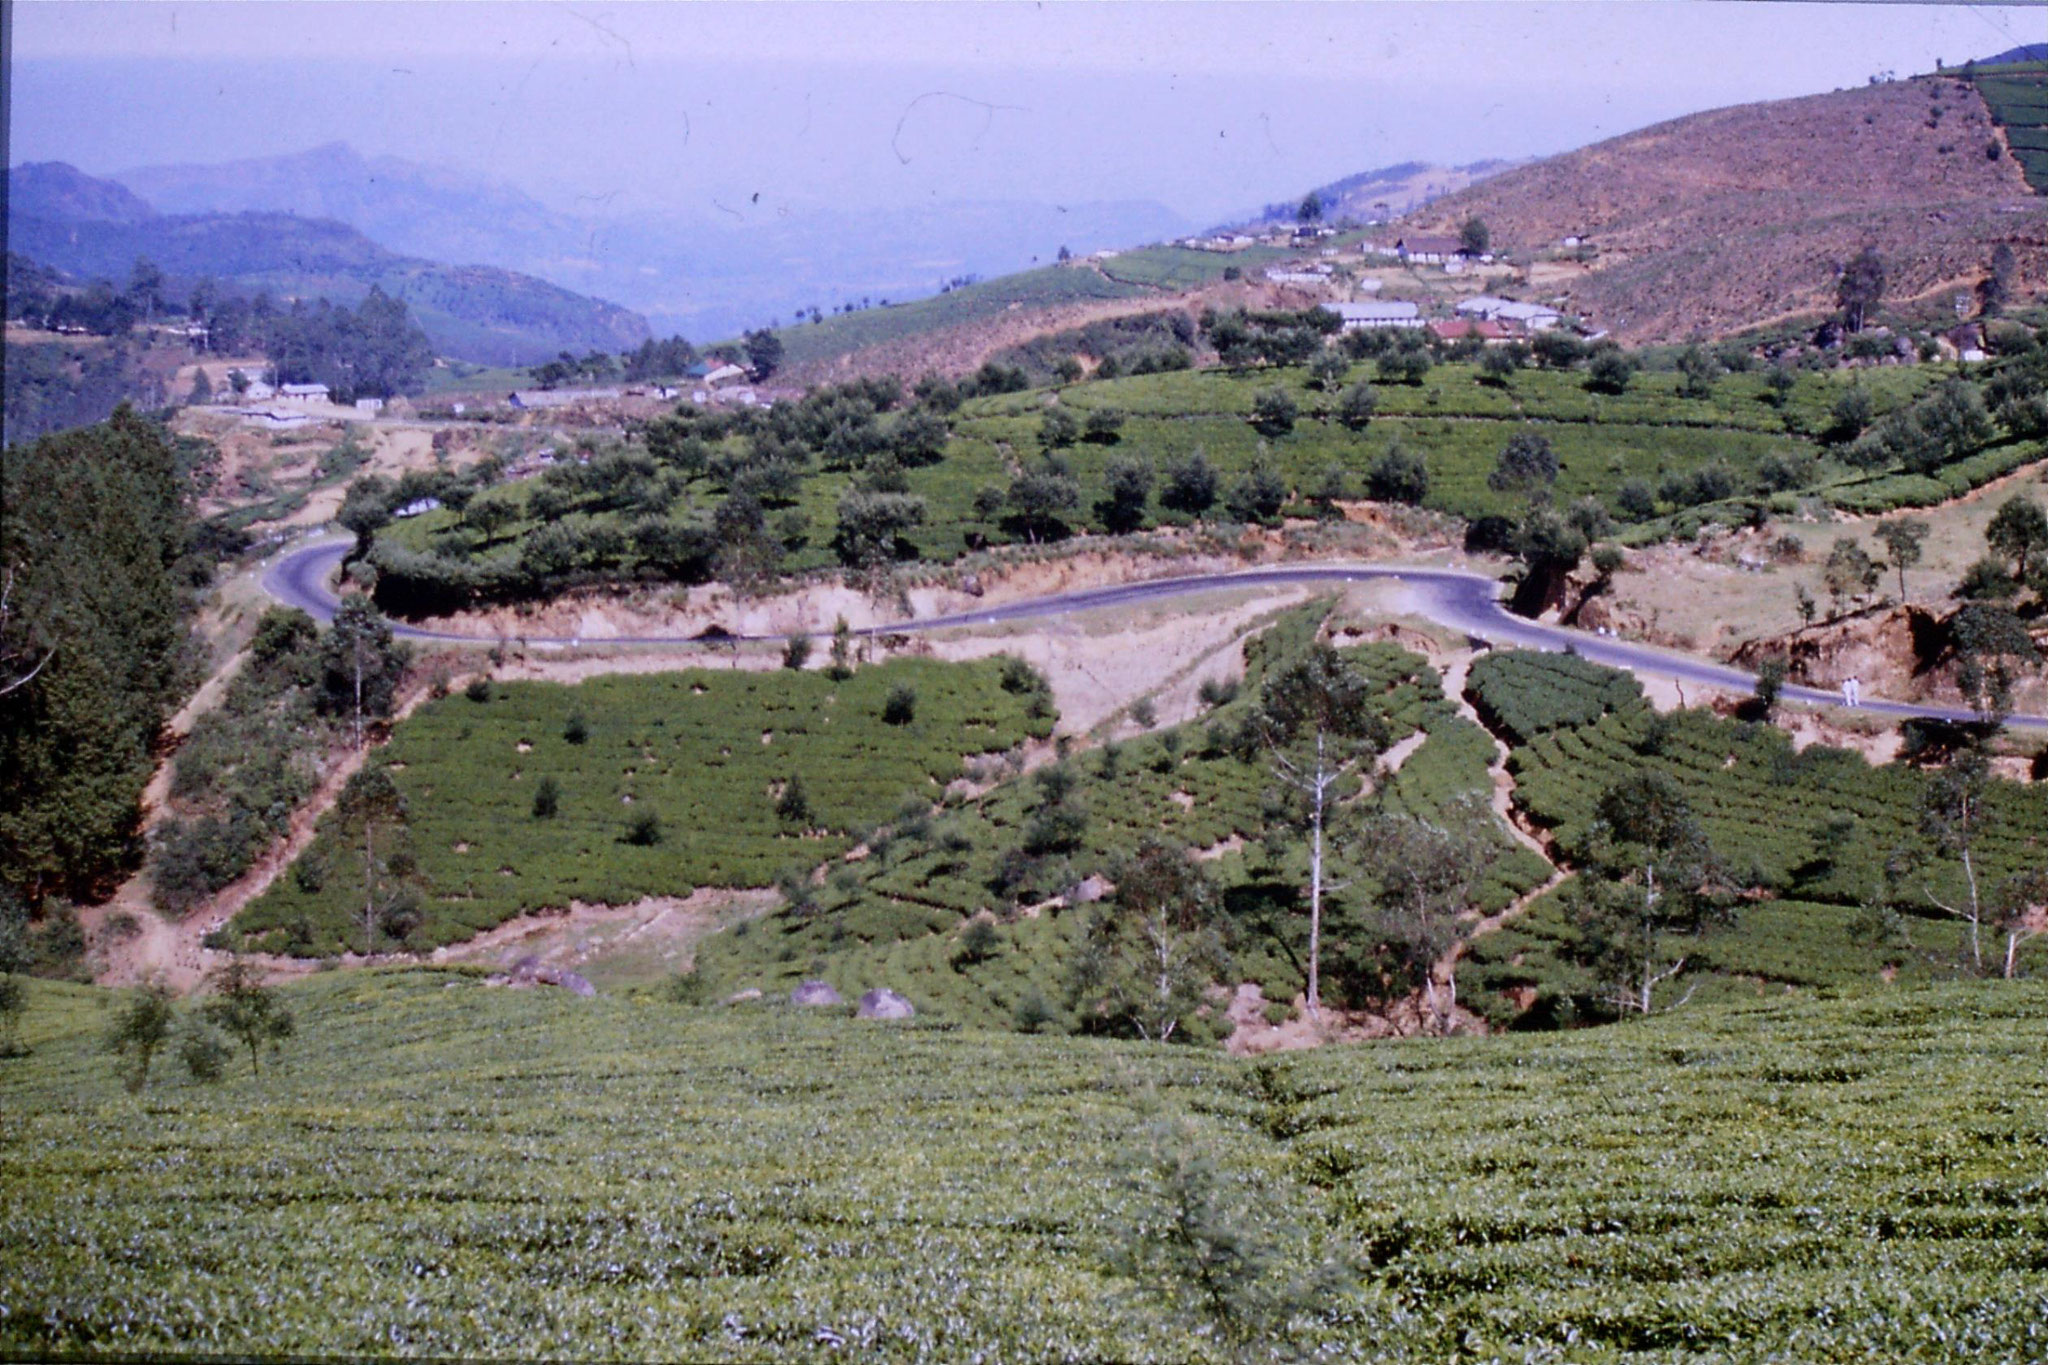 3/2/1990: 1: north of Nuwara Eliya, tea fields